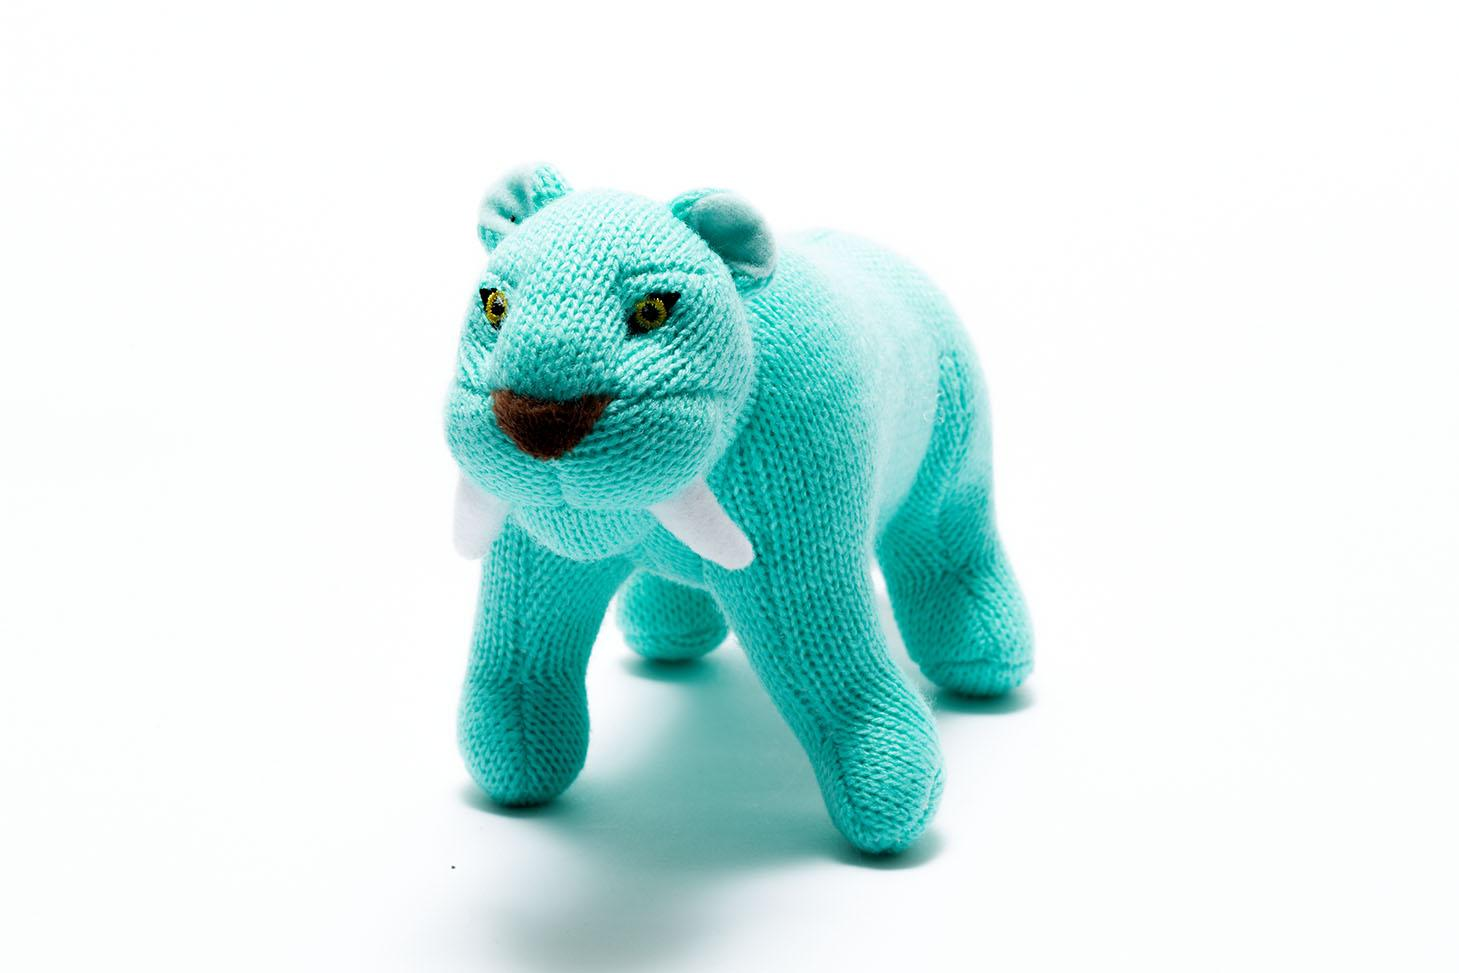 knitted turquoise small sabre tooth tiger dinosaur baby toy with rattle